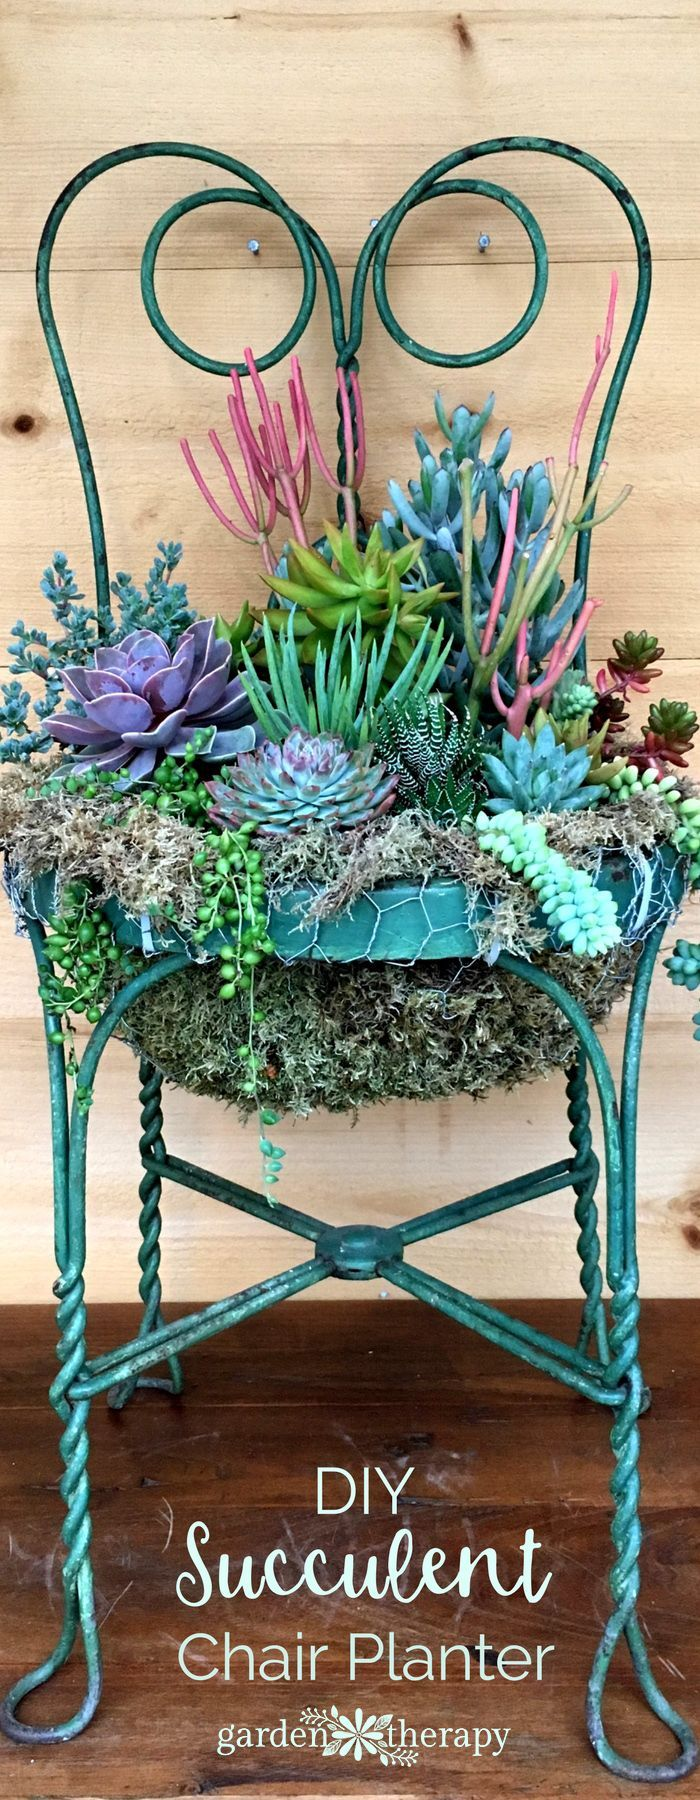 See how to upcycle an old chair